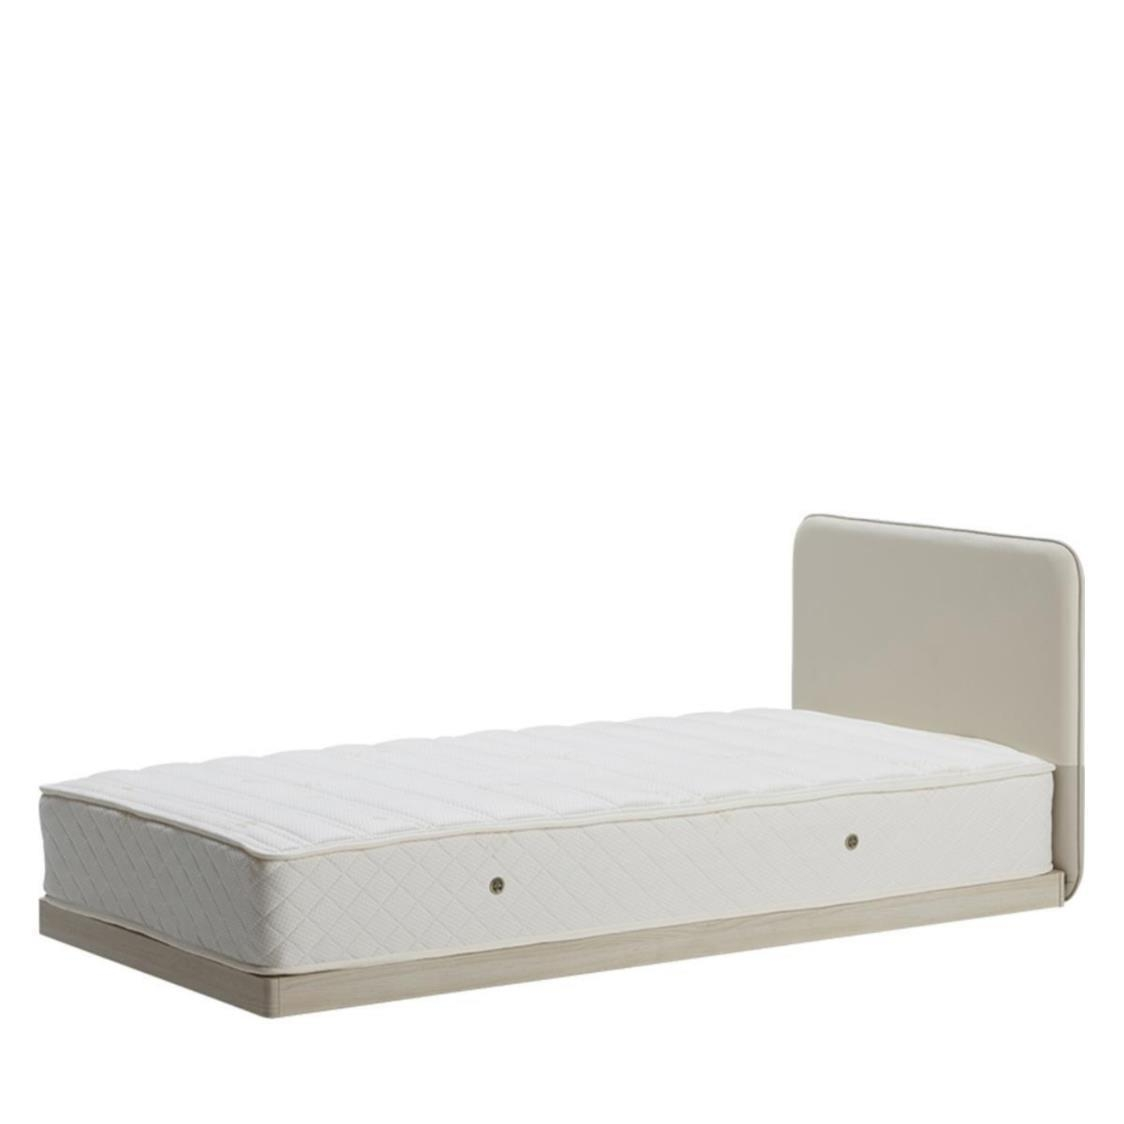 iloom Cusino Lower Type Bed A4210 Single